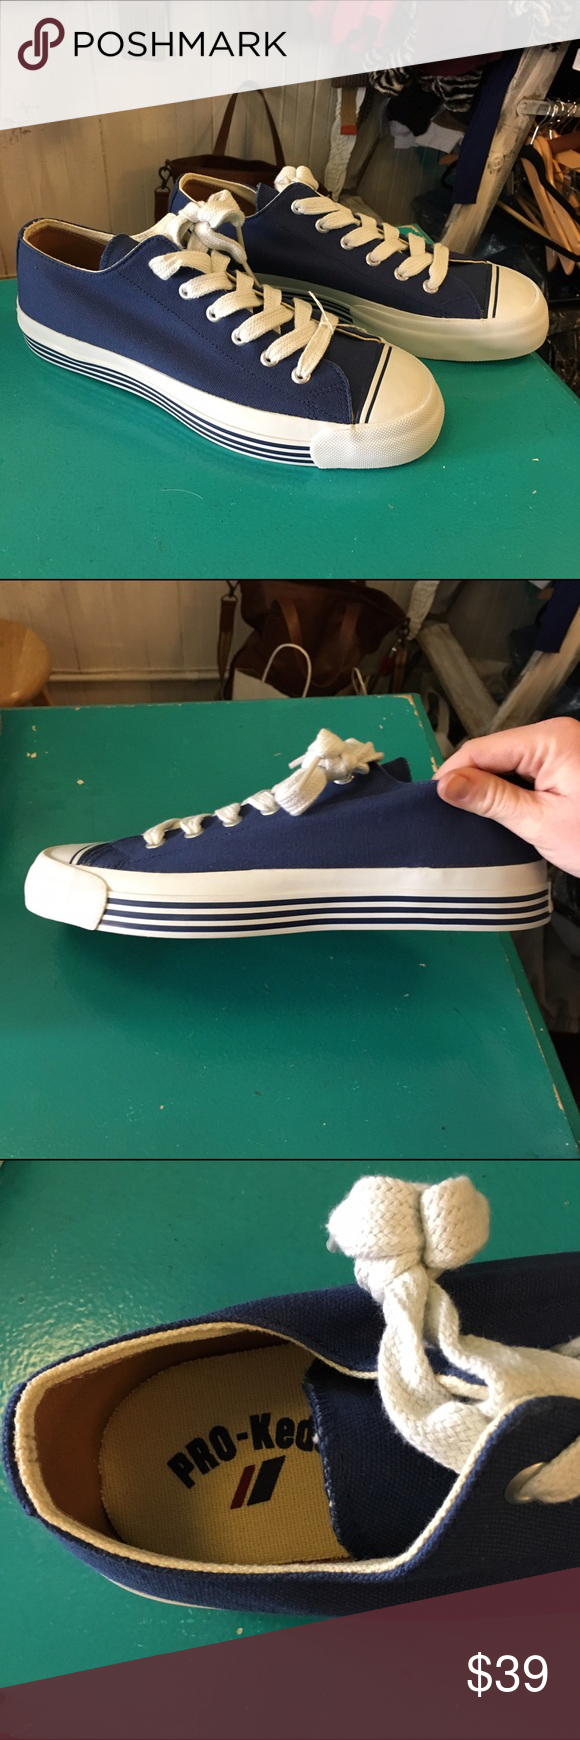 NEW PRO-KESS BLUE and WHITE LACE UP SNEAKERS - 9.5 NEW PRO-KESS BLUE and WHITE LACE UP SNEAKERS - 9.5. Great sneakers. Woman size 11. Comes with original box item number 6-213 pro-keds Shoes Sneakers